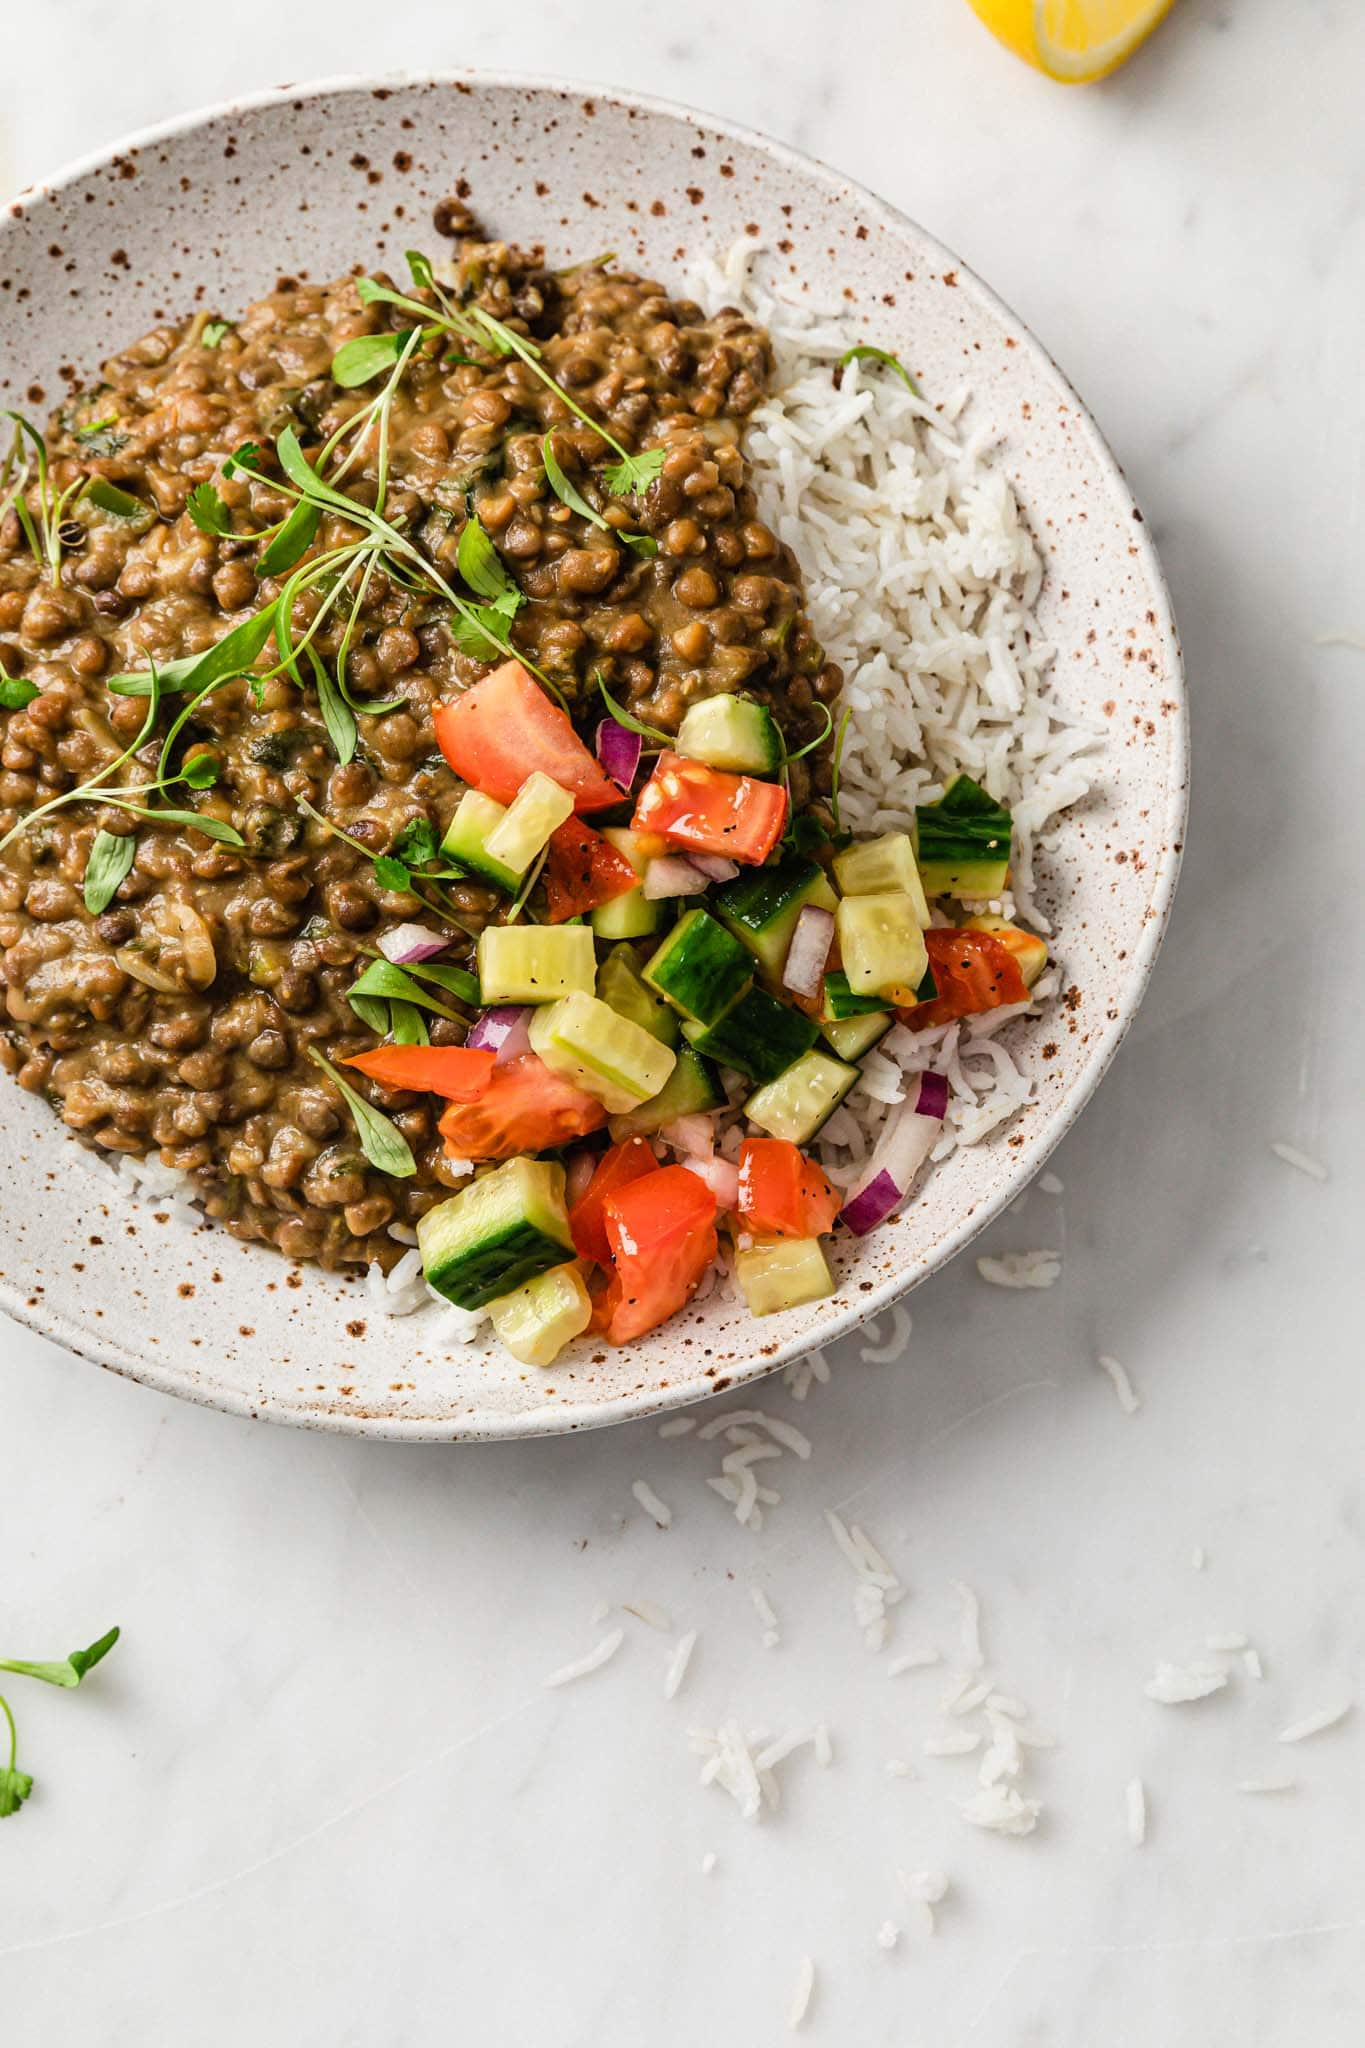 Instant Pot Whole Masoor Dal (Brown Lentil Curry) and basmati rice in a speckled plate with crunchy vegetables on the side